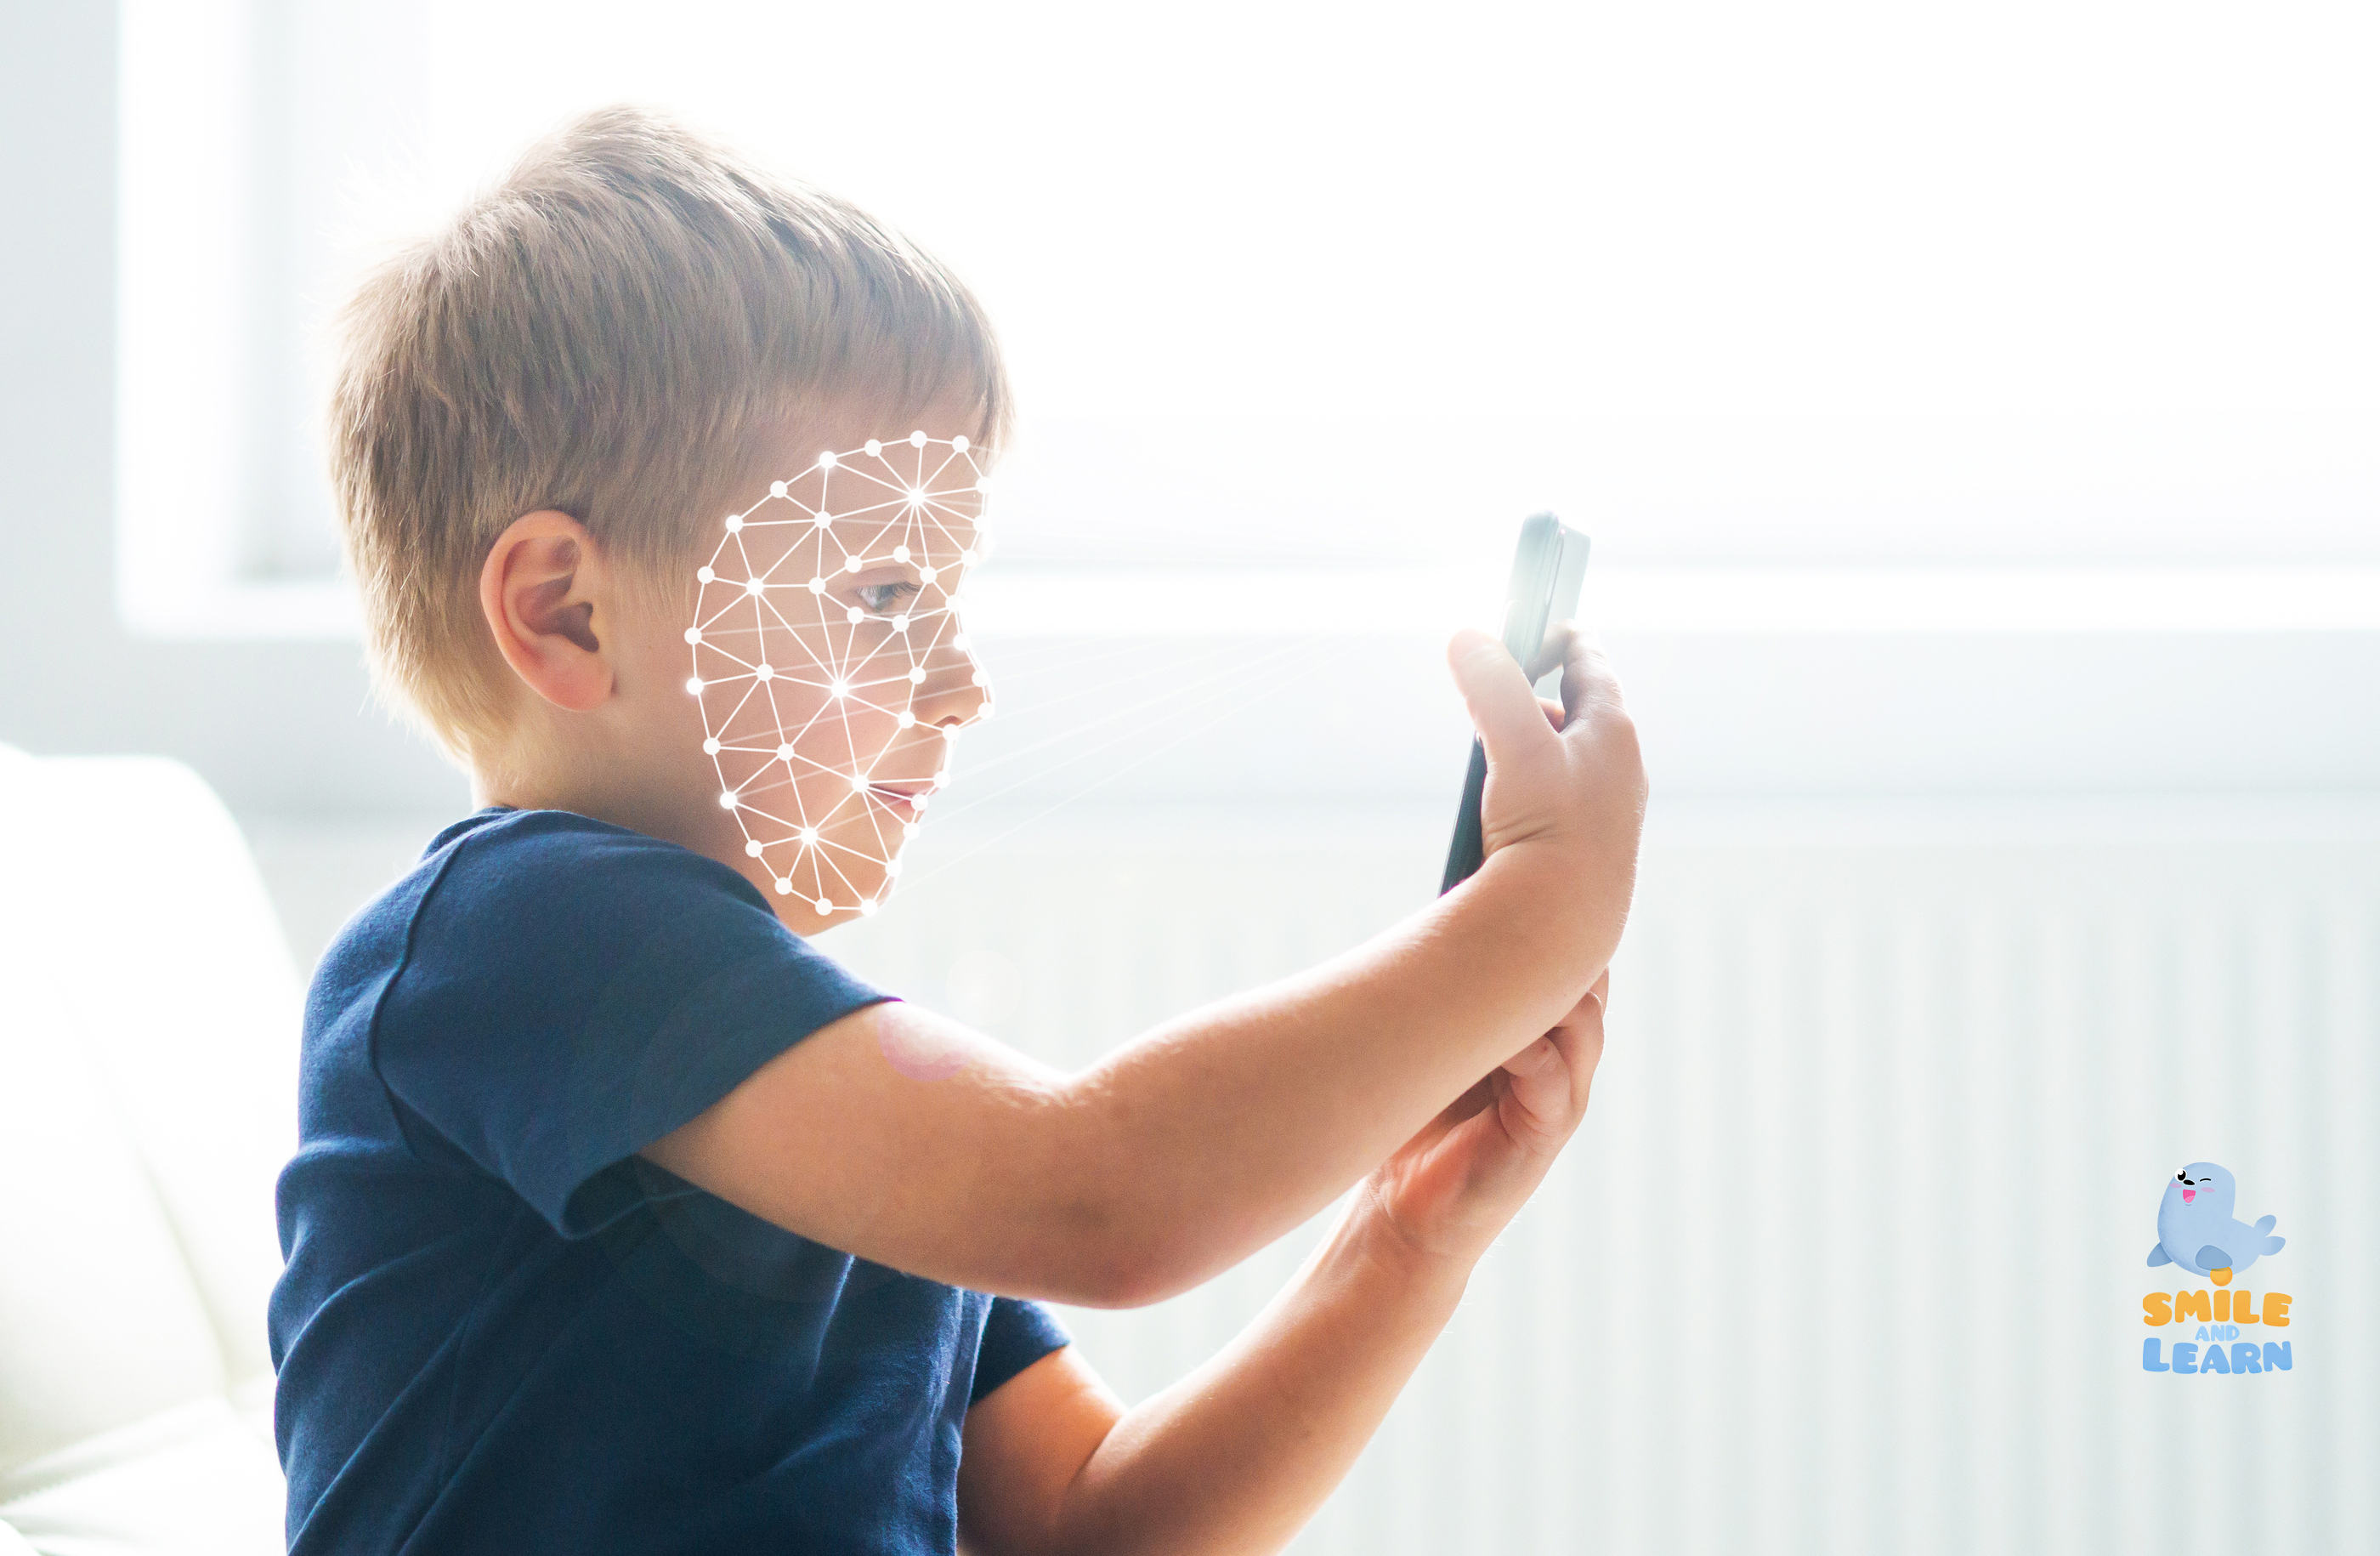 Kid using face id recognition. Boy with a smartphone gadget. Dig